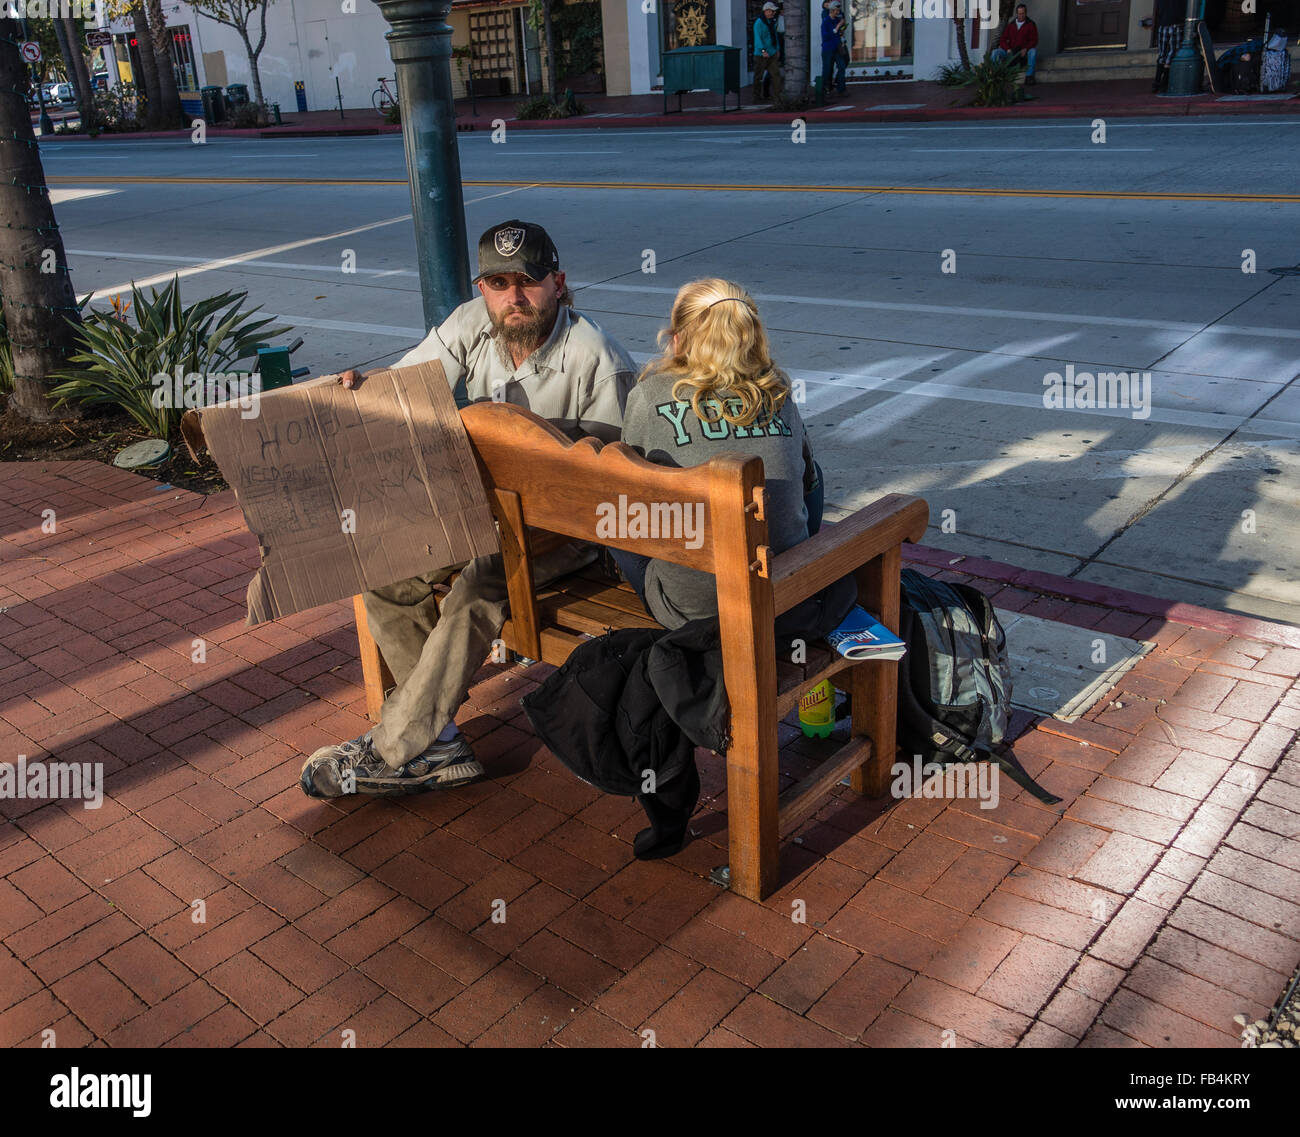 A homeless married couple begs while sitting on a bench on State Street in Santa Barbara, California. - Stock Image